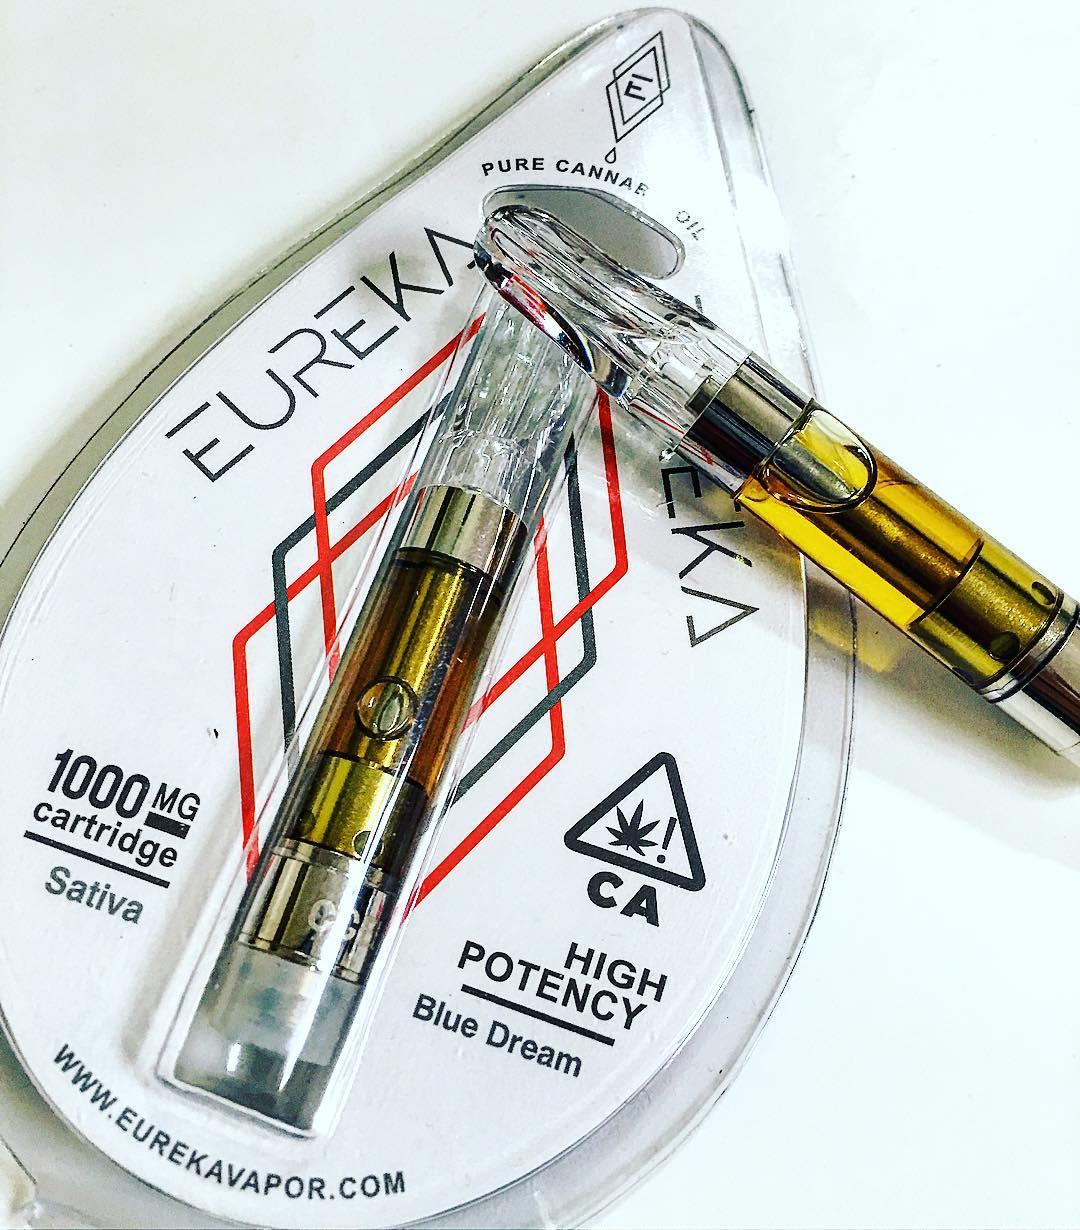 Buy Eureka Vapor Carts Online| Best Cartridges Online |